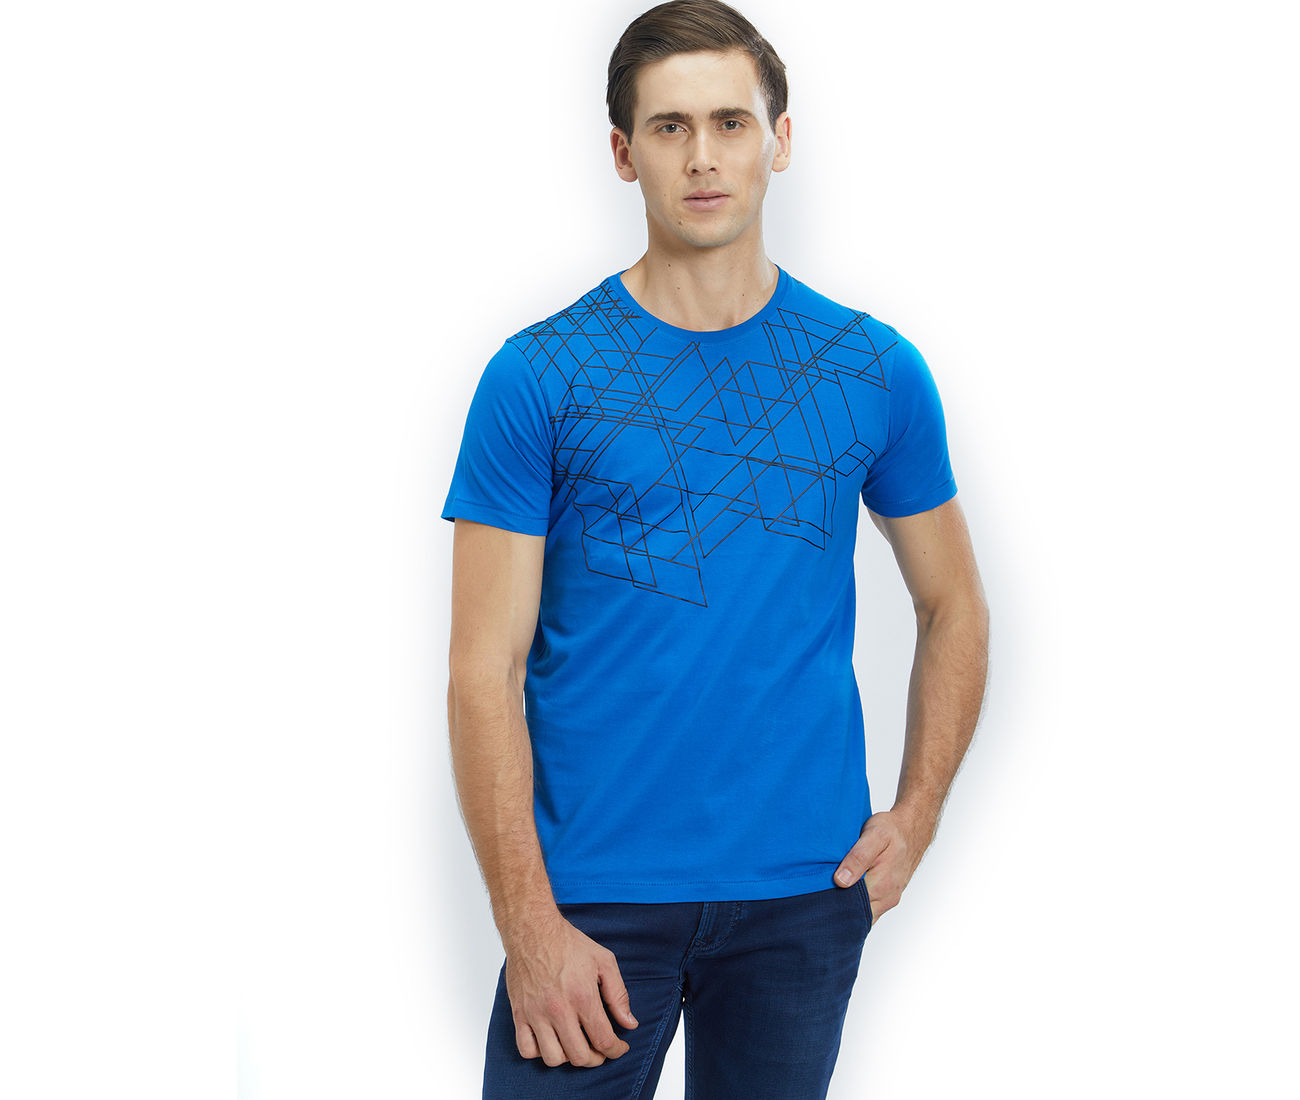 cb2e0ca8e Buy Blue Color Cotton Slim Fit T-Shirt For Men at Discounted Price.